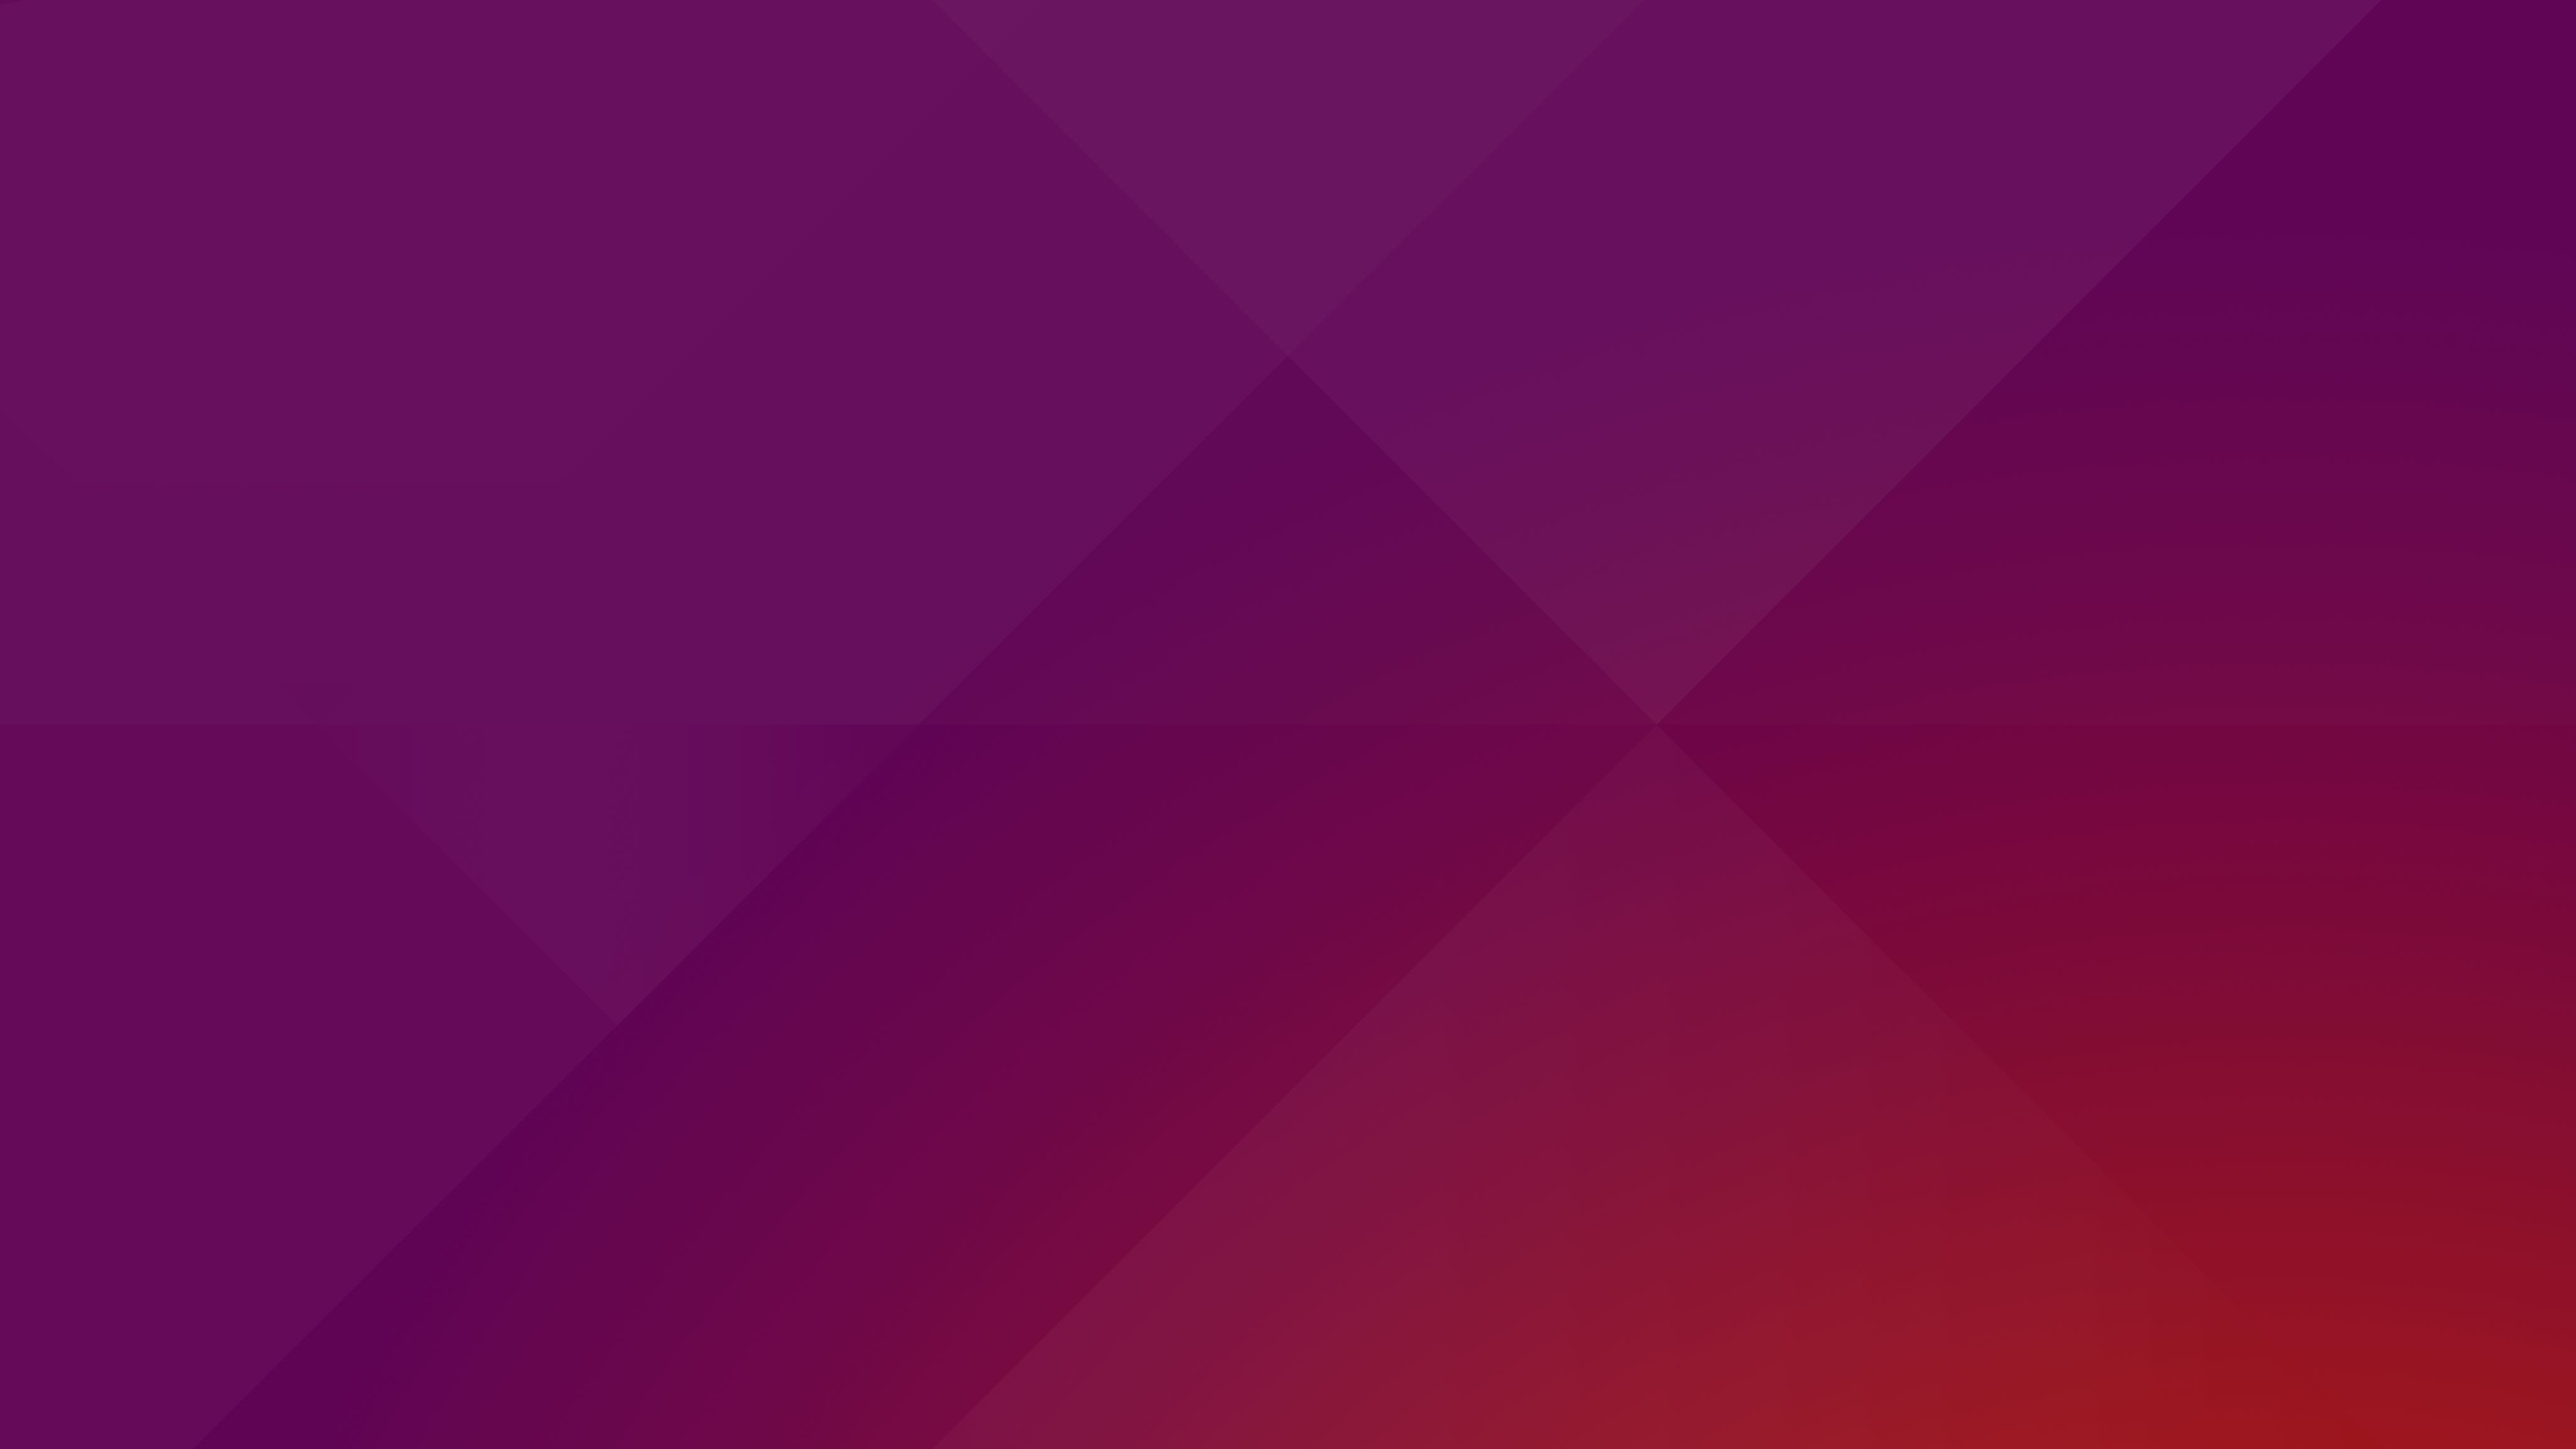 this is the default desktop wallpaper for ubuntu 15 10